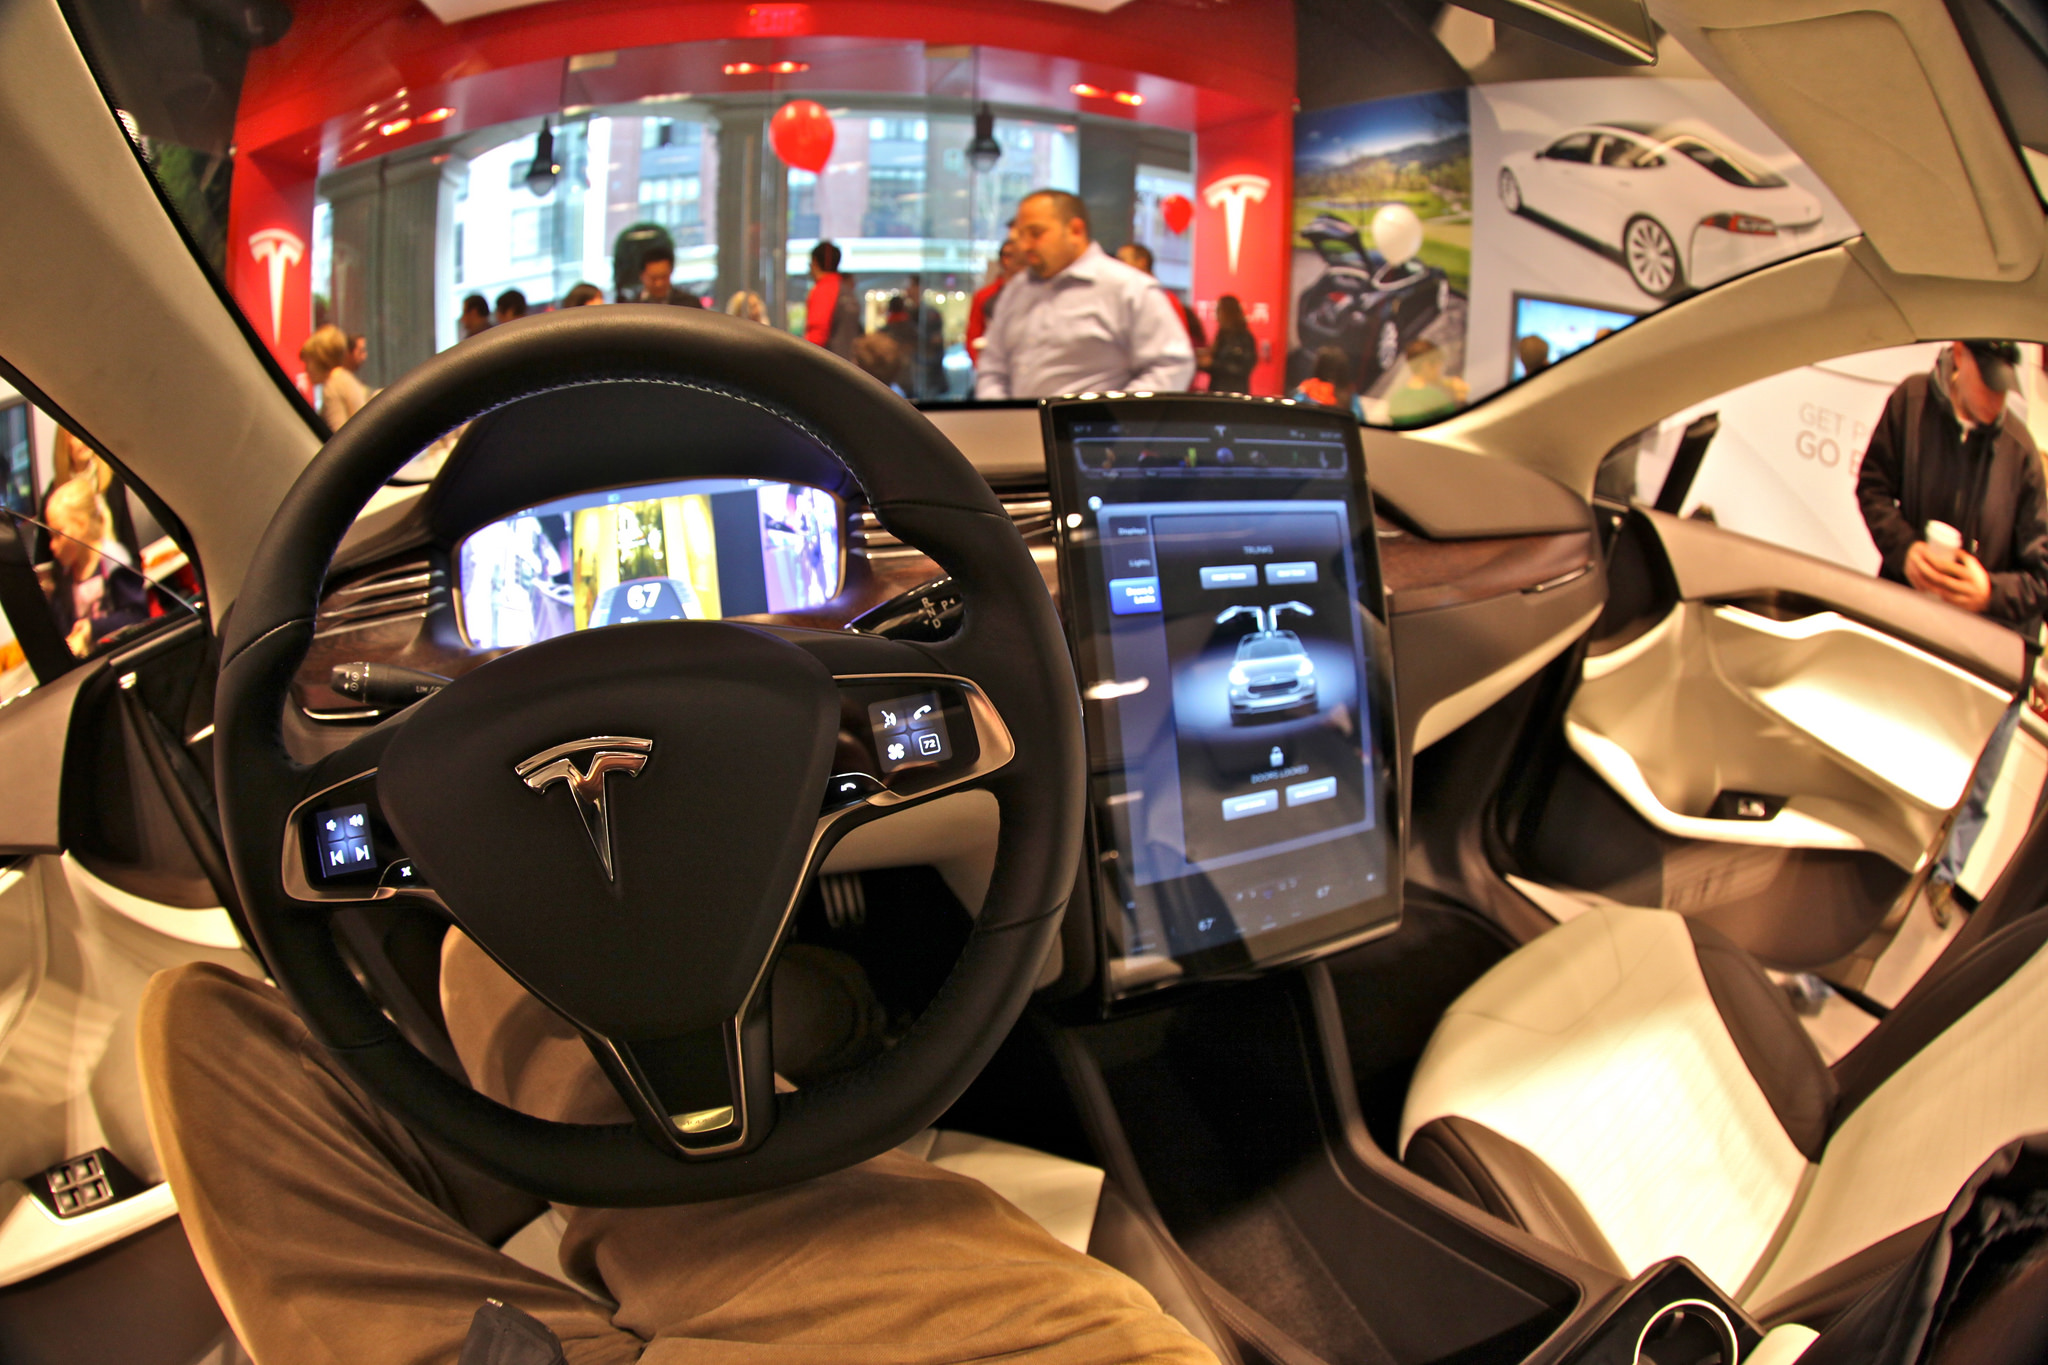 "<p>Mark Lanterman, a computer forensic specialist, said it's most likely that the man somehow convinced Tesla to add the vehicle's VIN number to his personal Tesla account. </p>[|CREDIT|]<p><em>Photo courtesy of <a href=""https://www.flickr.com/photos/jurvetson/6849378716"" target=""_blank"">Steve Jurvetson</a>/Flickr. </em></p>"